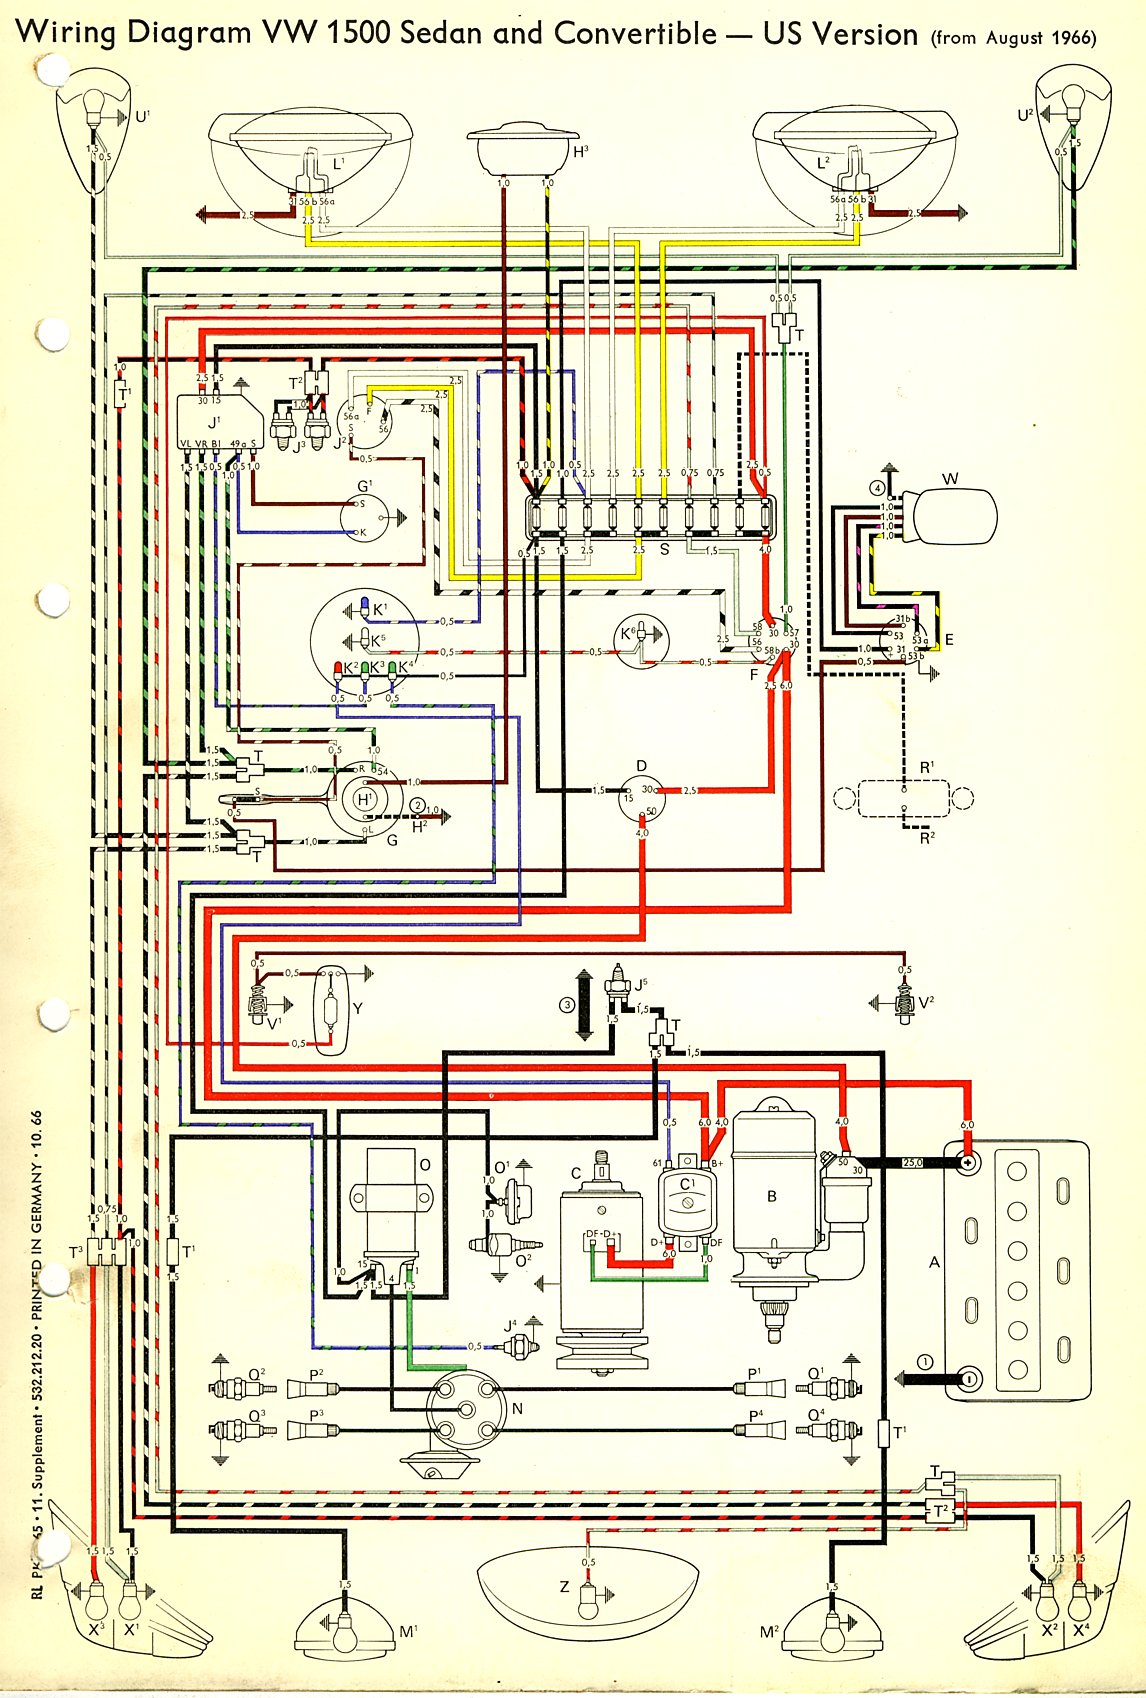 bug_67_USA thesamba com type 1 wiring diagrams 1973 vw beetle wiring diagram at virtualis.co